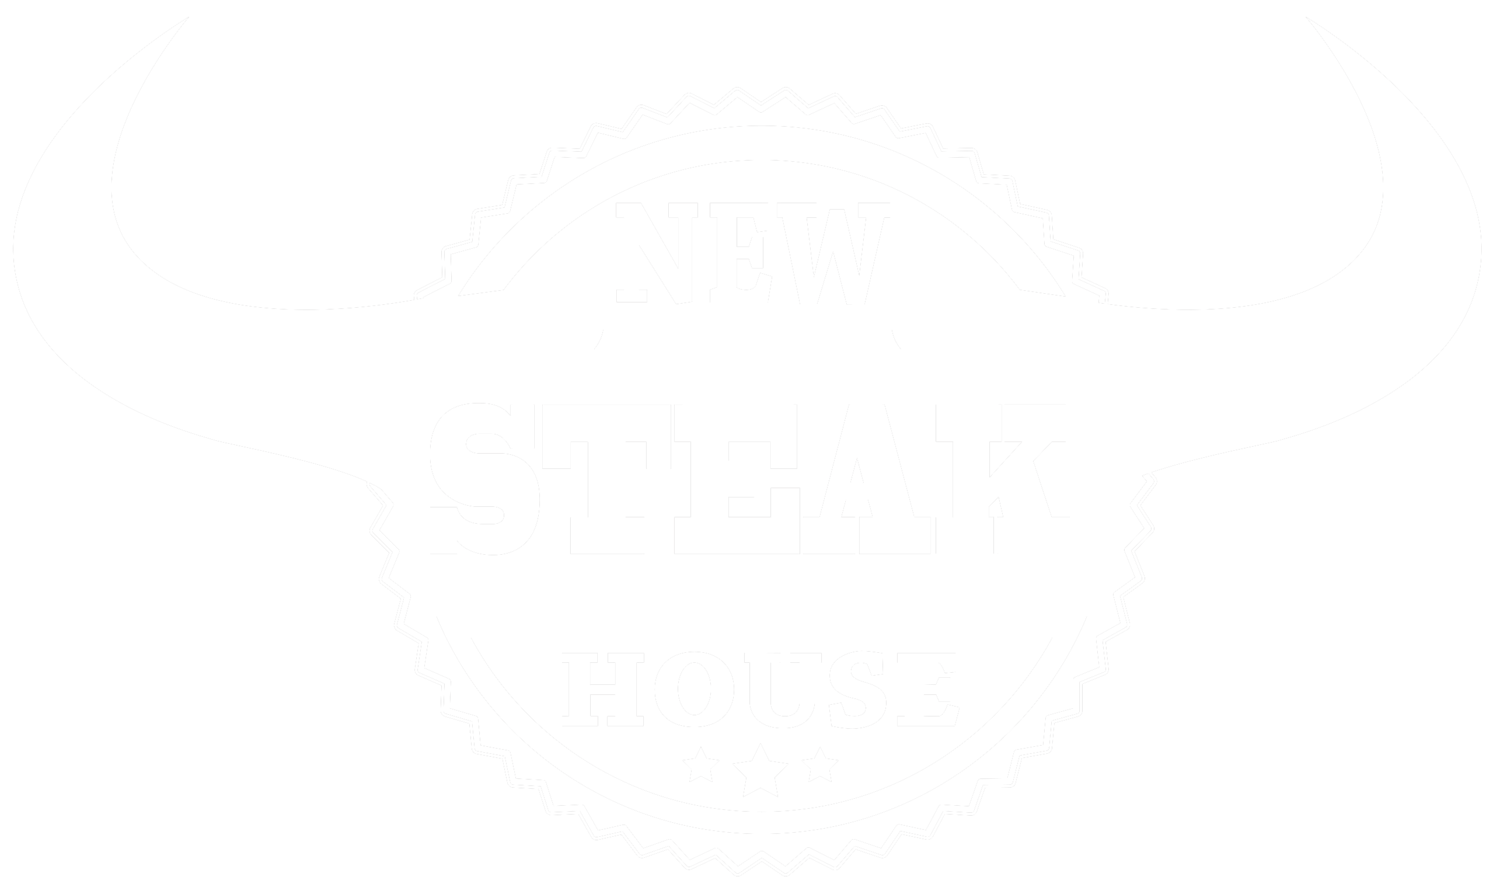 New Steak House